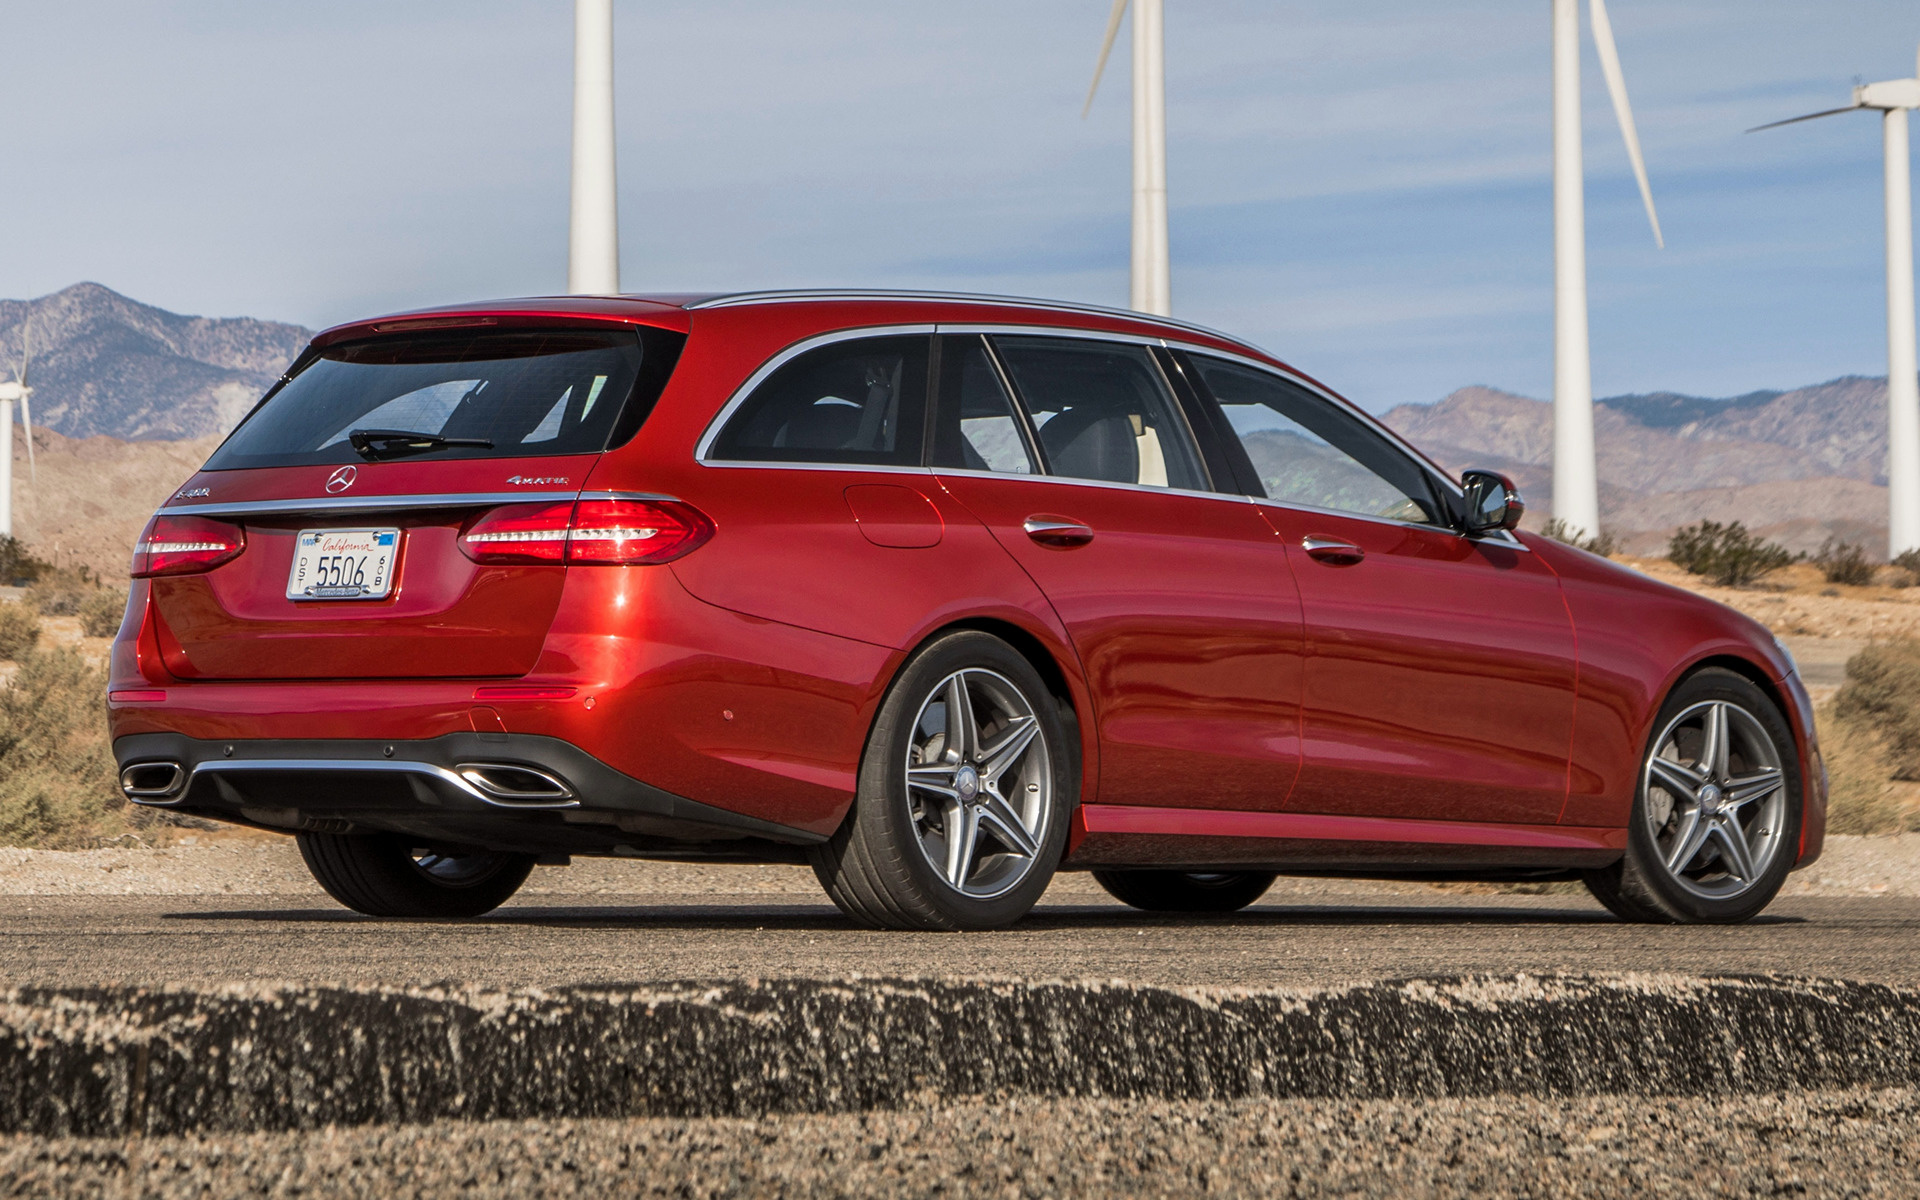 Mercedes benz e class wagon amg styling 2017 us for Mercedes benz e class wagon